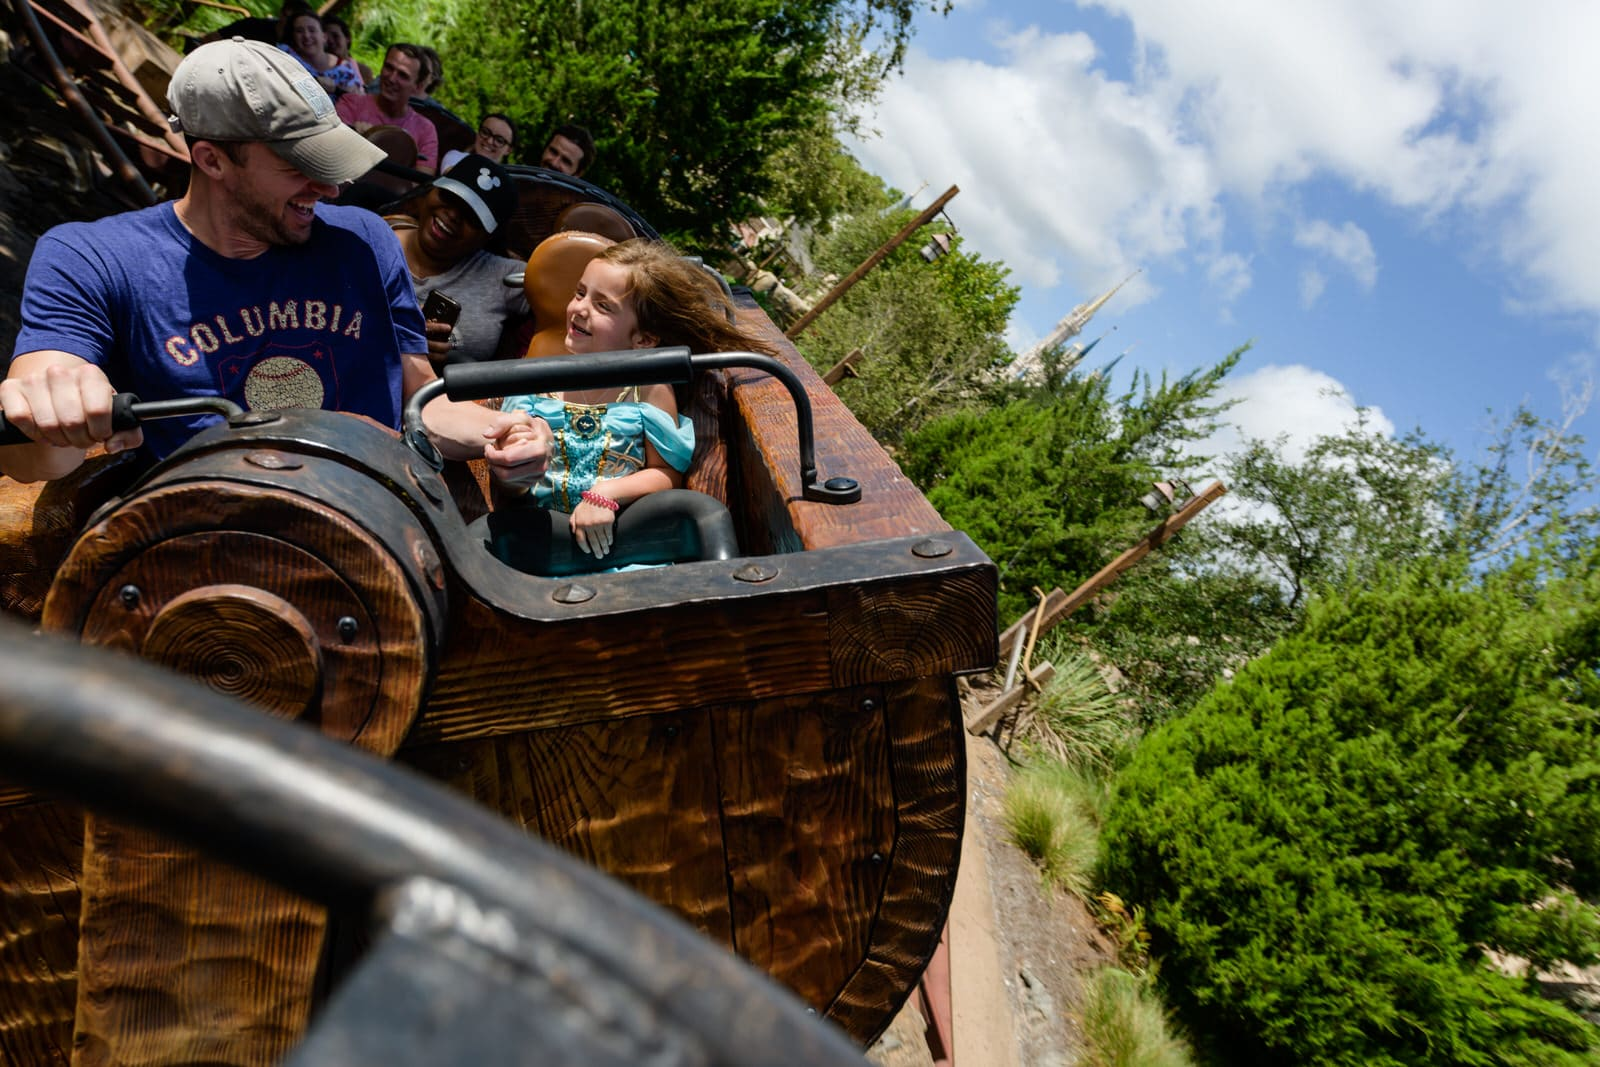 father and daughter ride the Mine Train